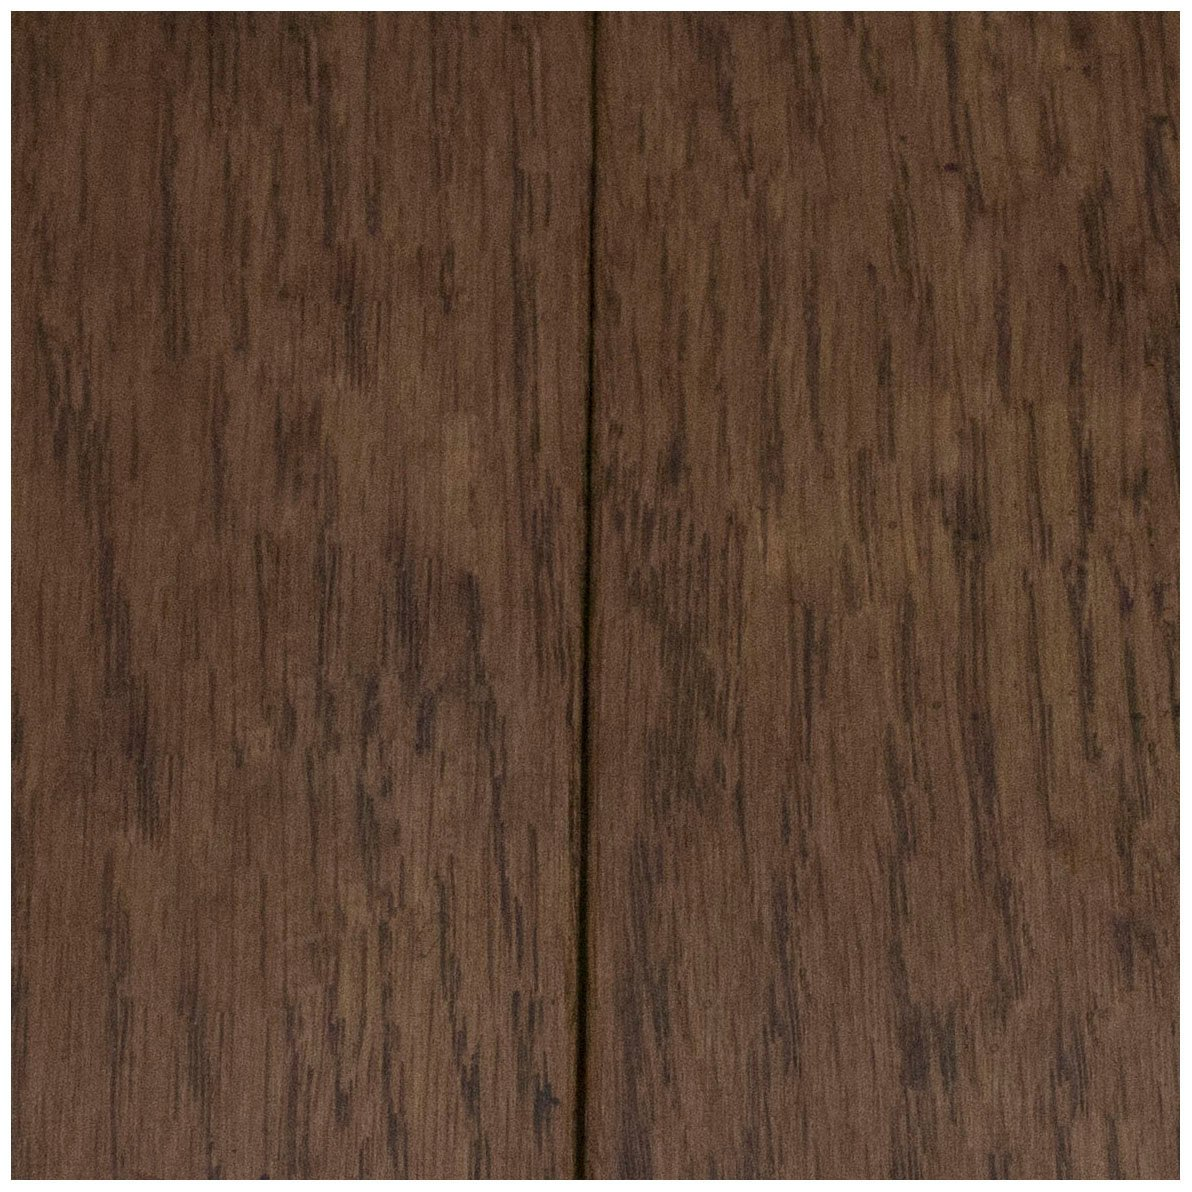 36 Moldings Online Shaw Saddle Collection Length Presidential White Oak Tread